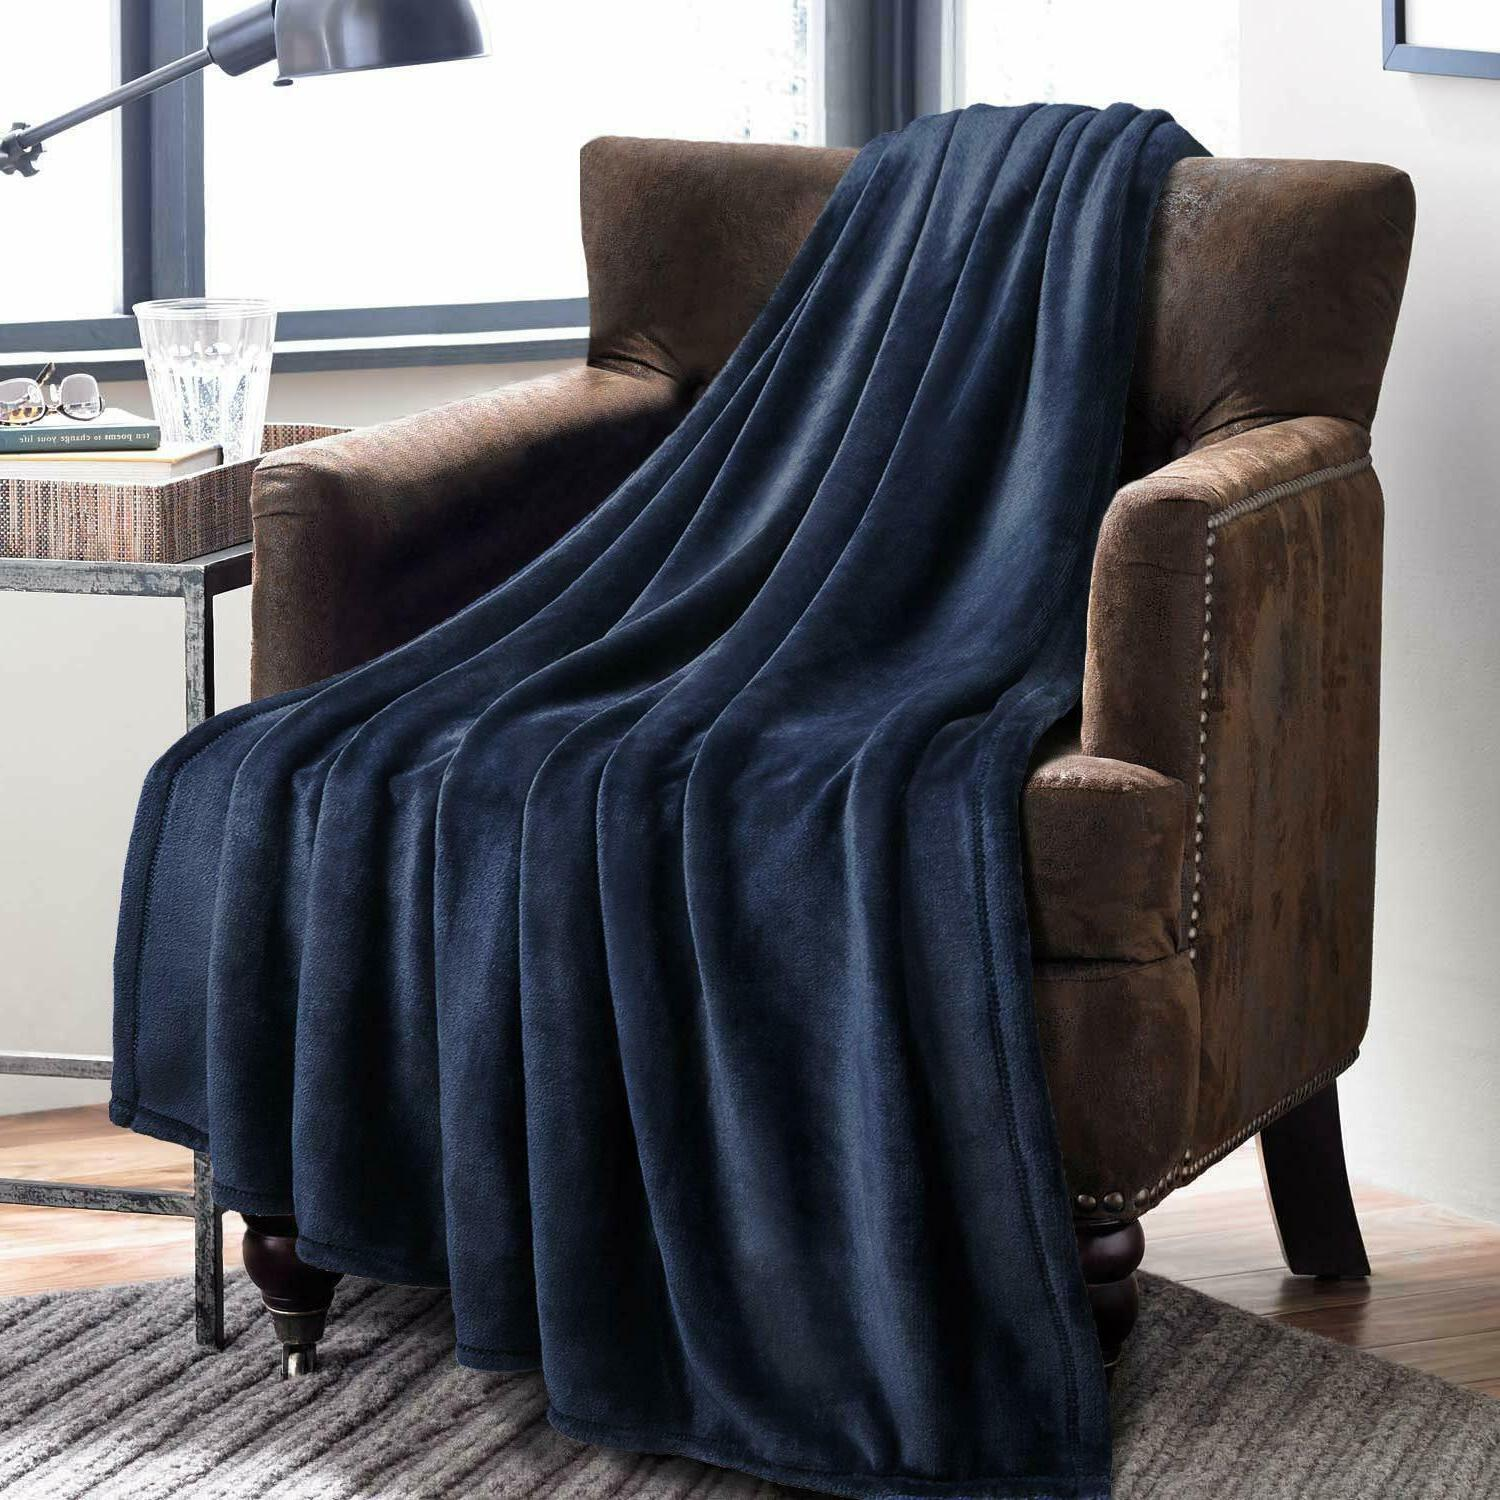 Size Navy Soft Luxury Bed